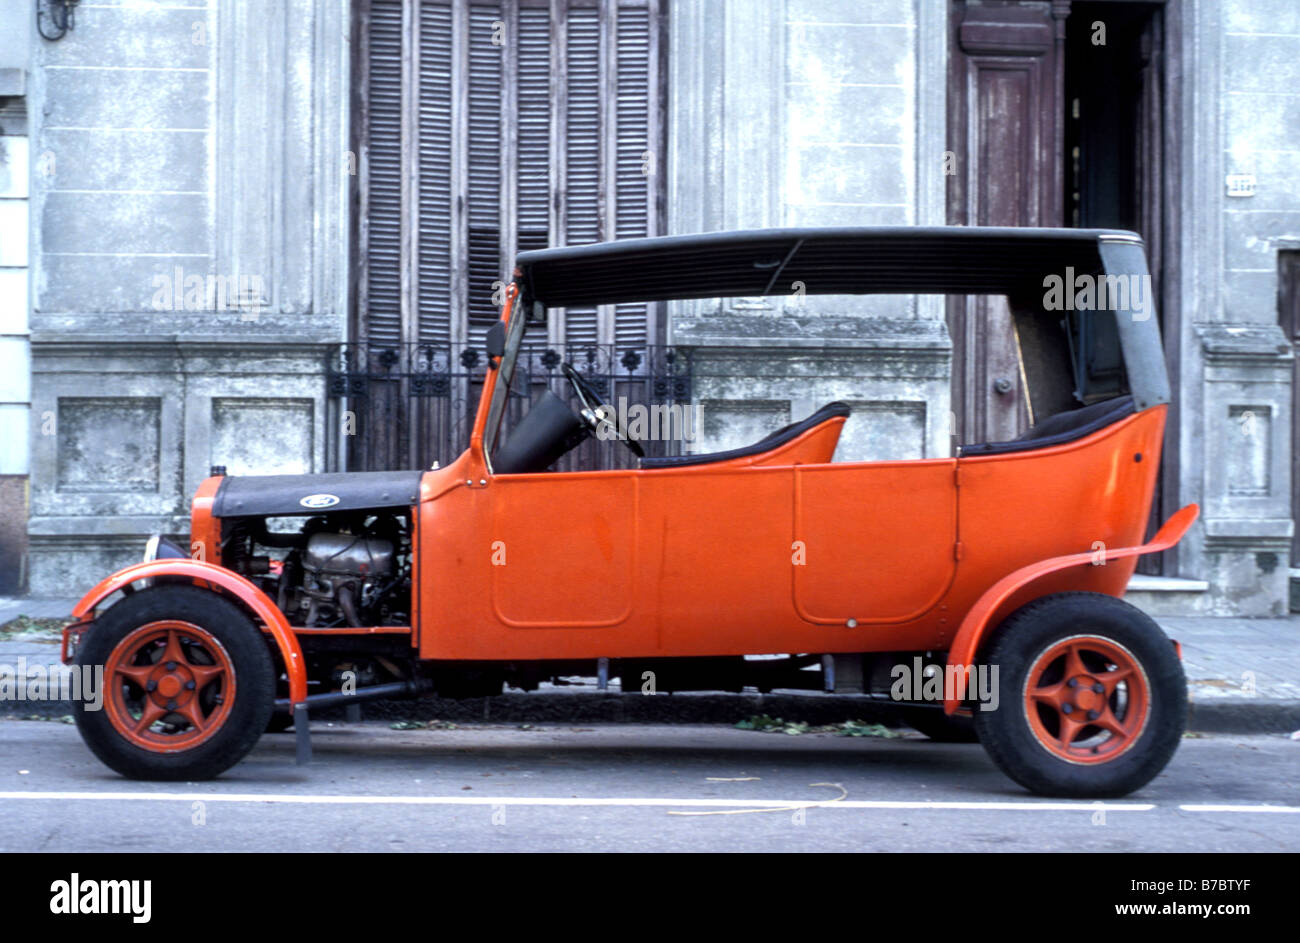 33c39c97 model t ford hot rod montevideo uruguay Stock Photo: 21774019 - Alamy